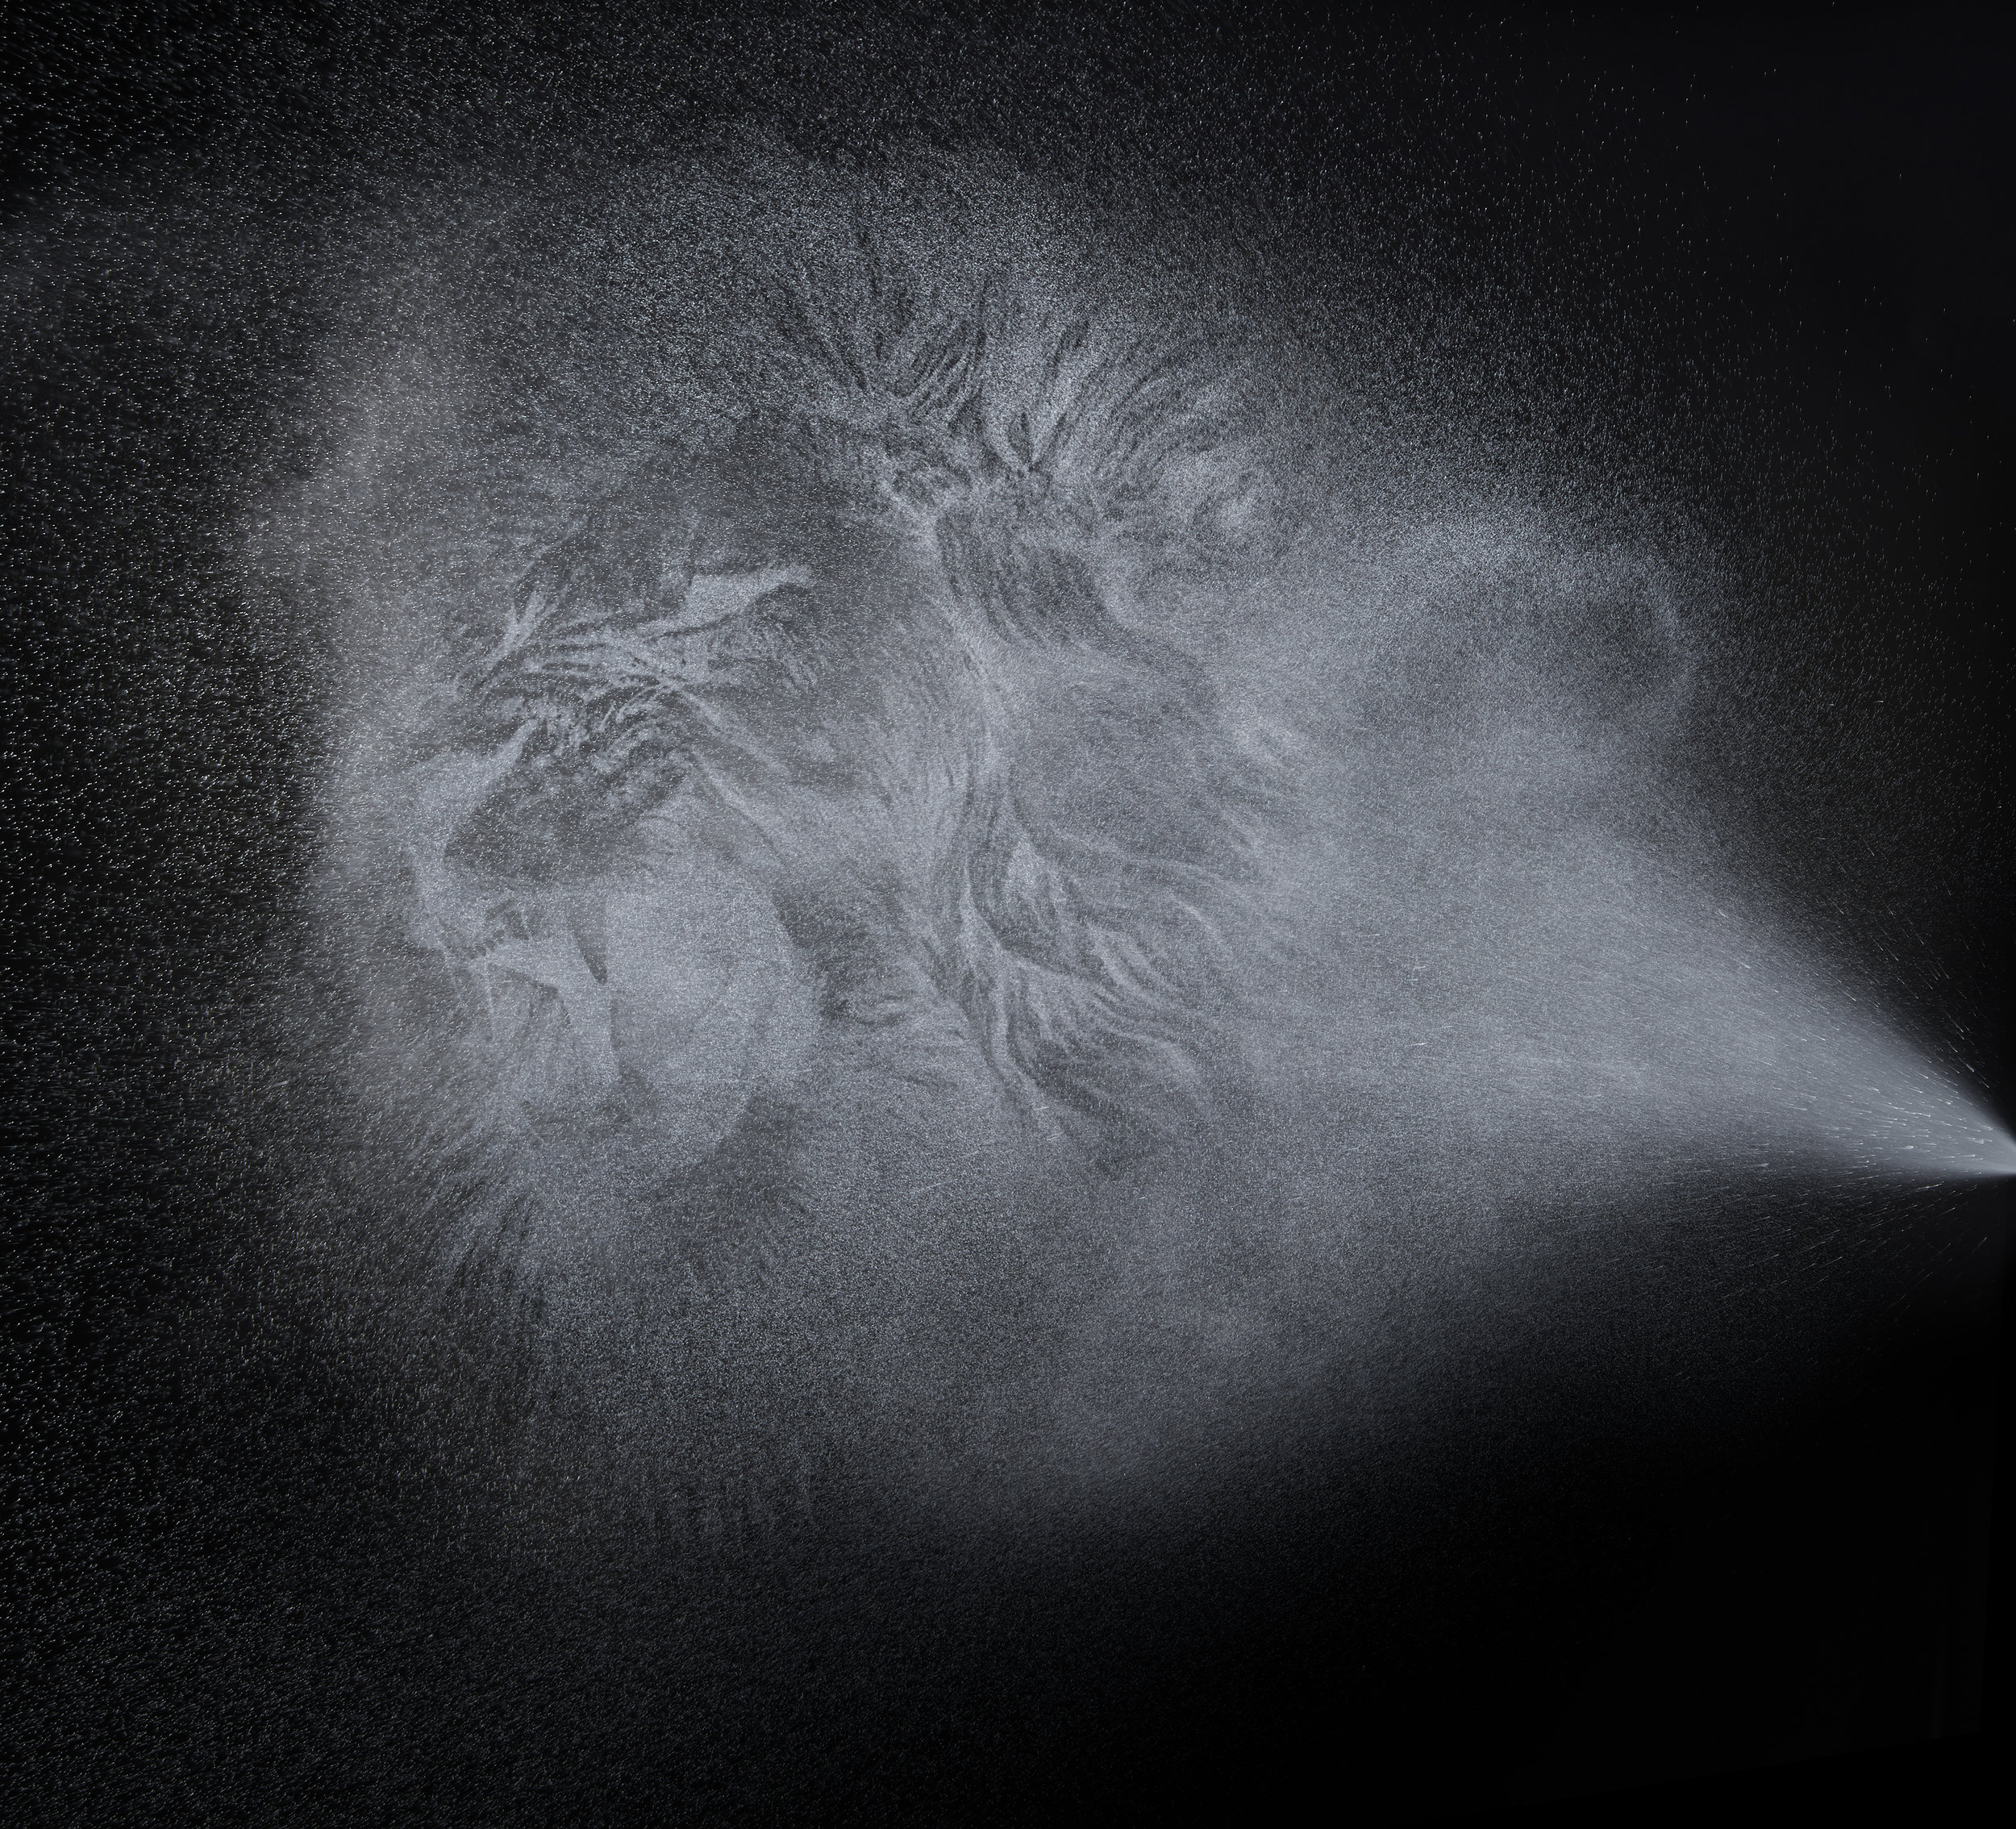 Spray_lion.jpg